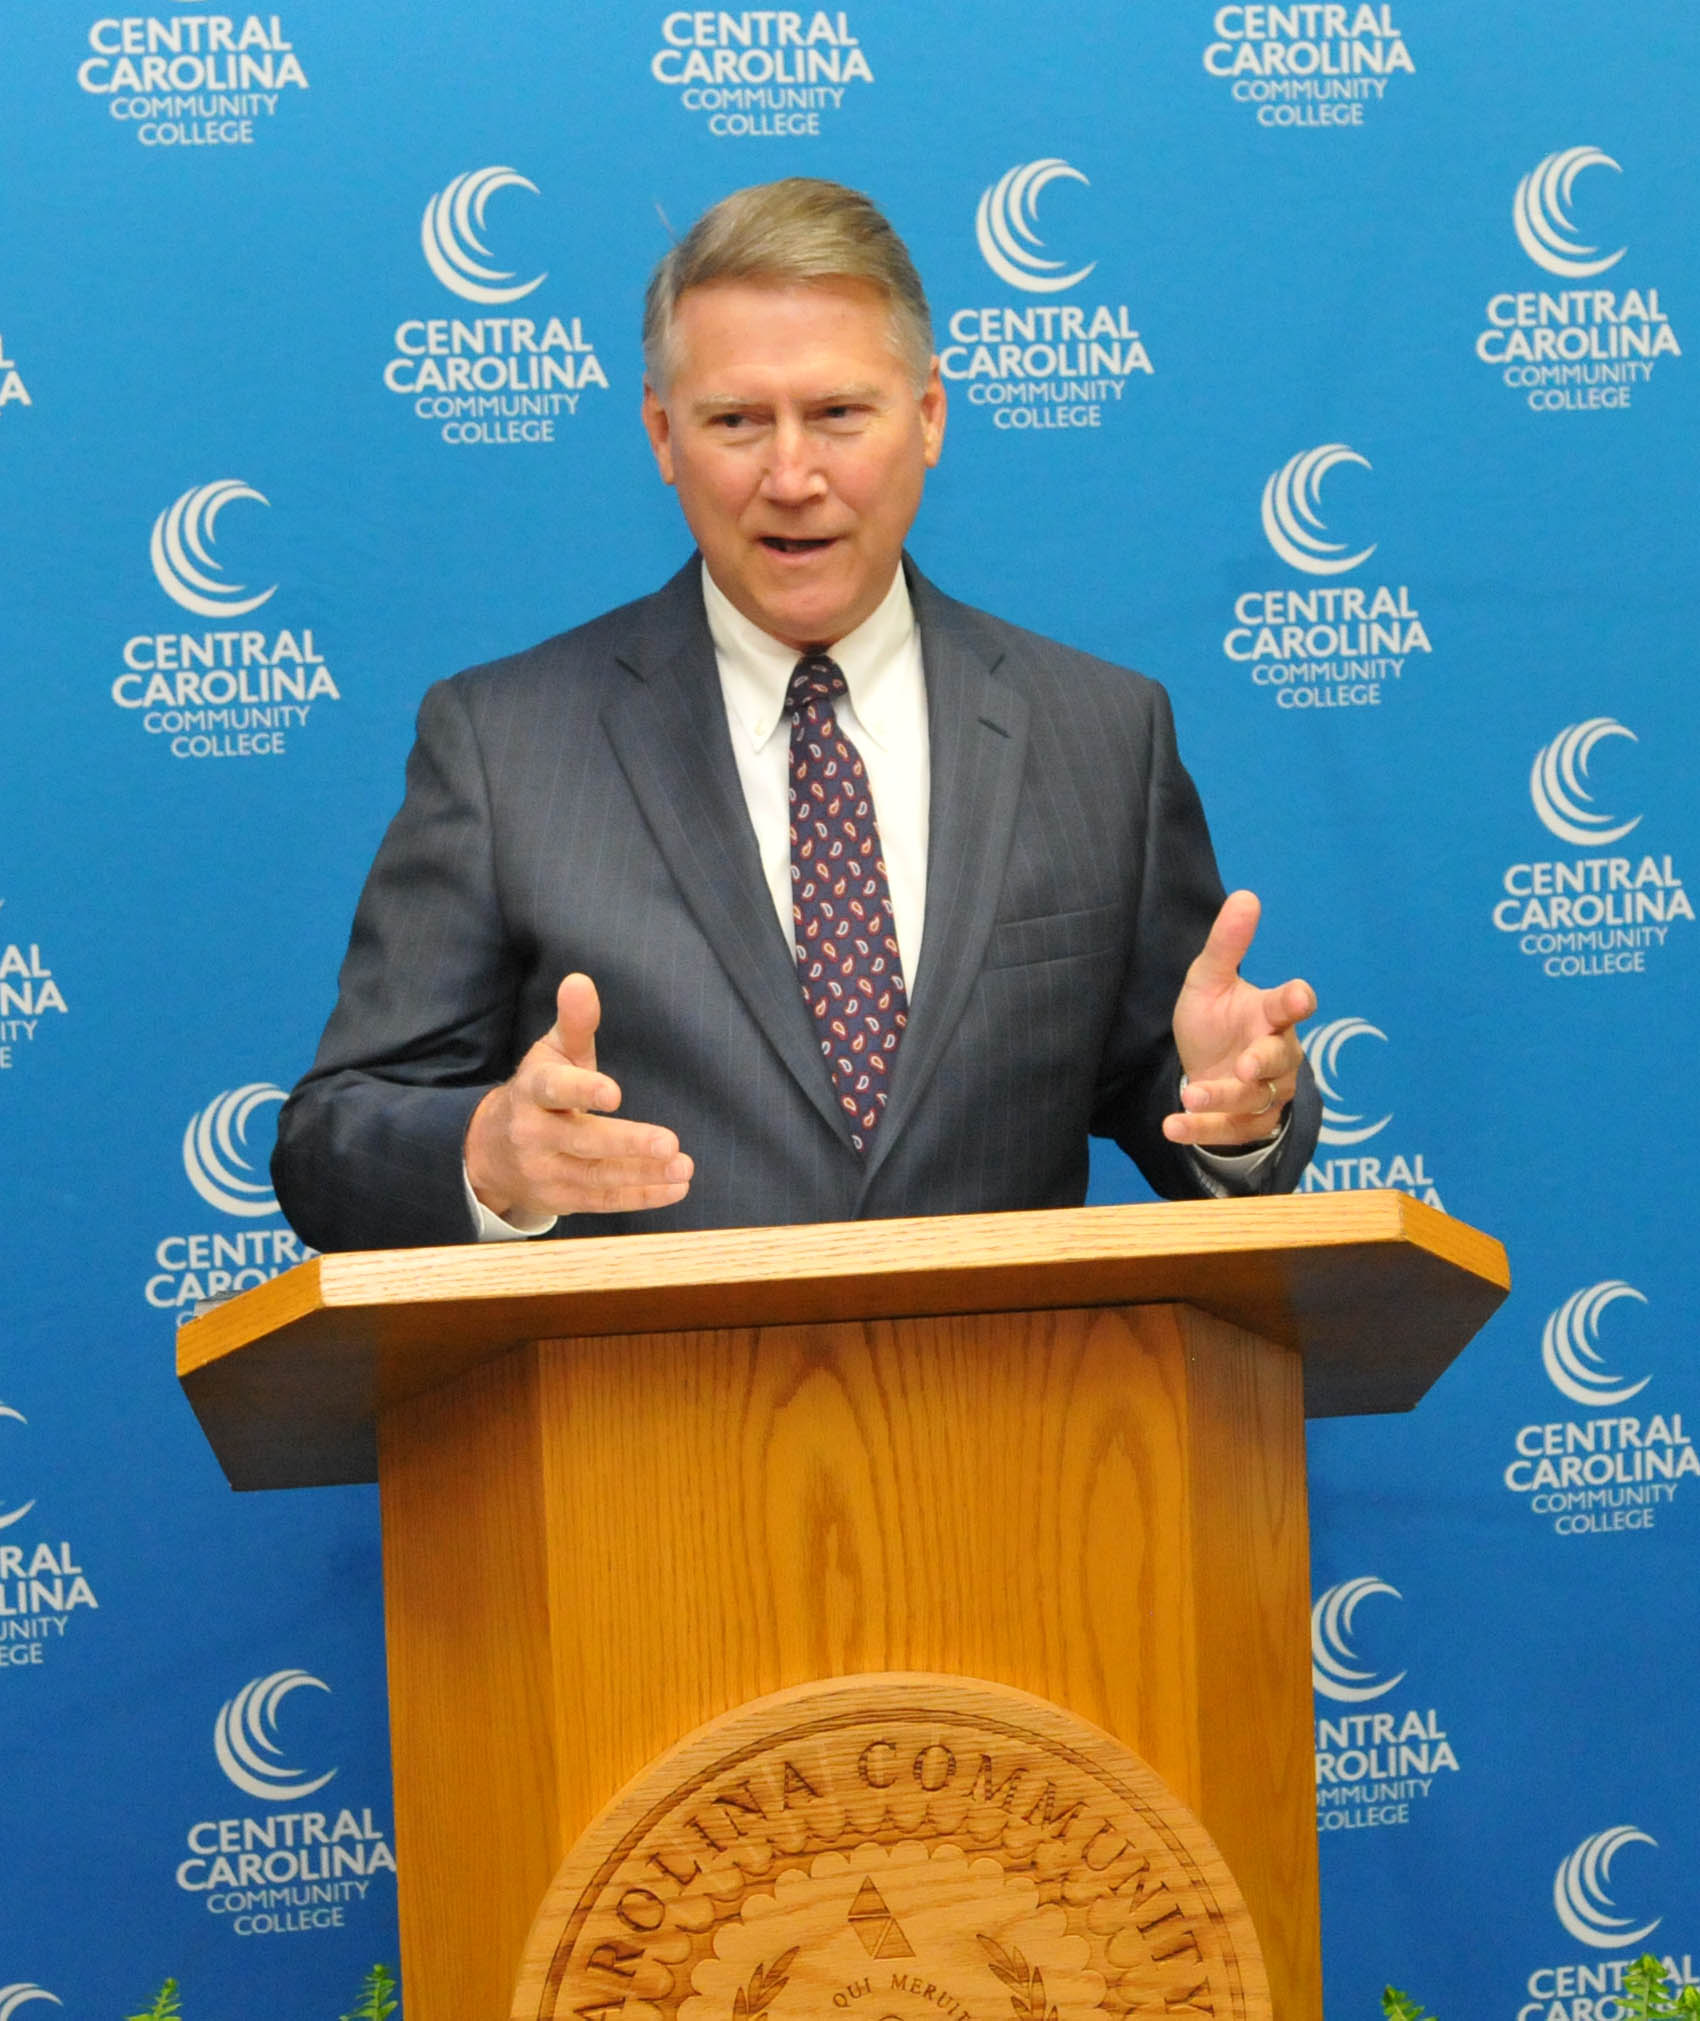 Click to enlarge,  Former North Carolina Lt. Gov. Dennis Wicker spoke at the dedication of Central Carolina Community College's Department of Paralegal Studies in honor of the late William W. and Ellen B. Staton of Sanford.